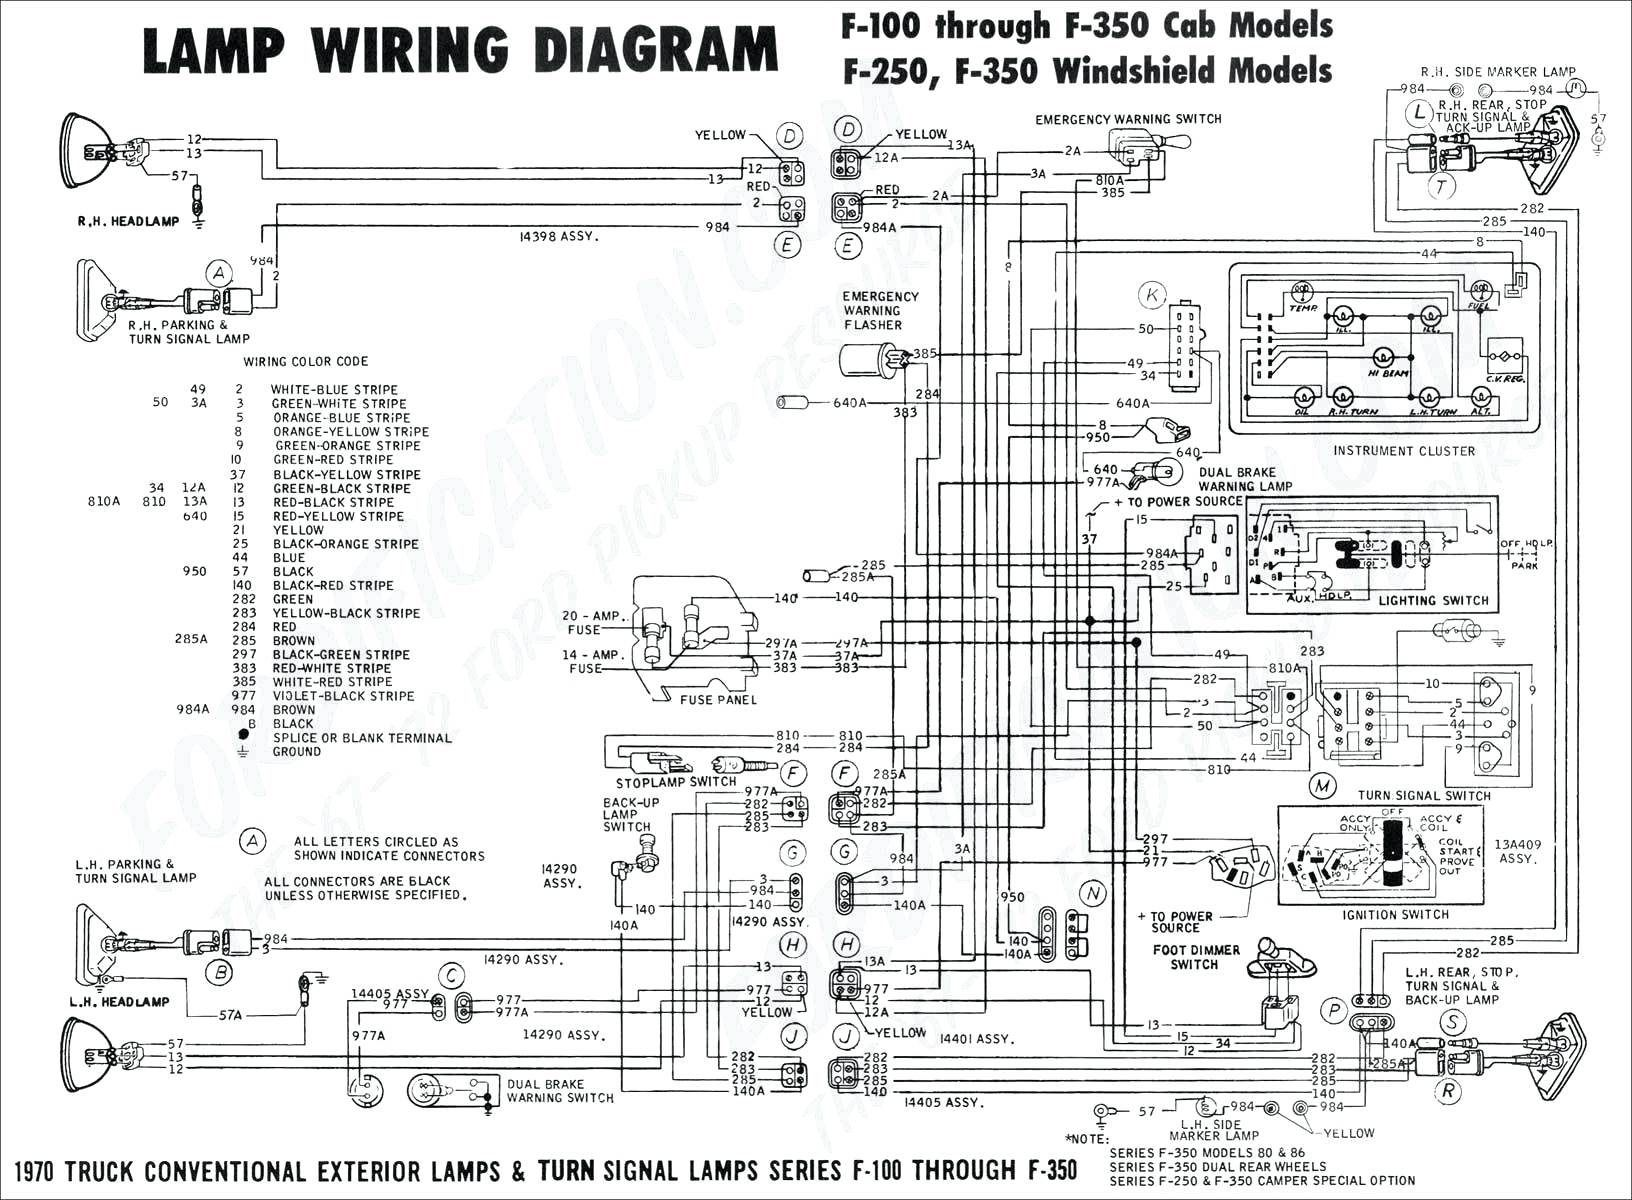 2020 Dodge Ram 2500 Cummins Concept And Review Electrical Wiring Diagram Electrical Diagram Trailer Wiring Diagram